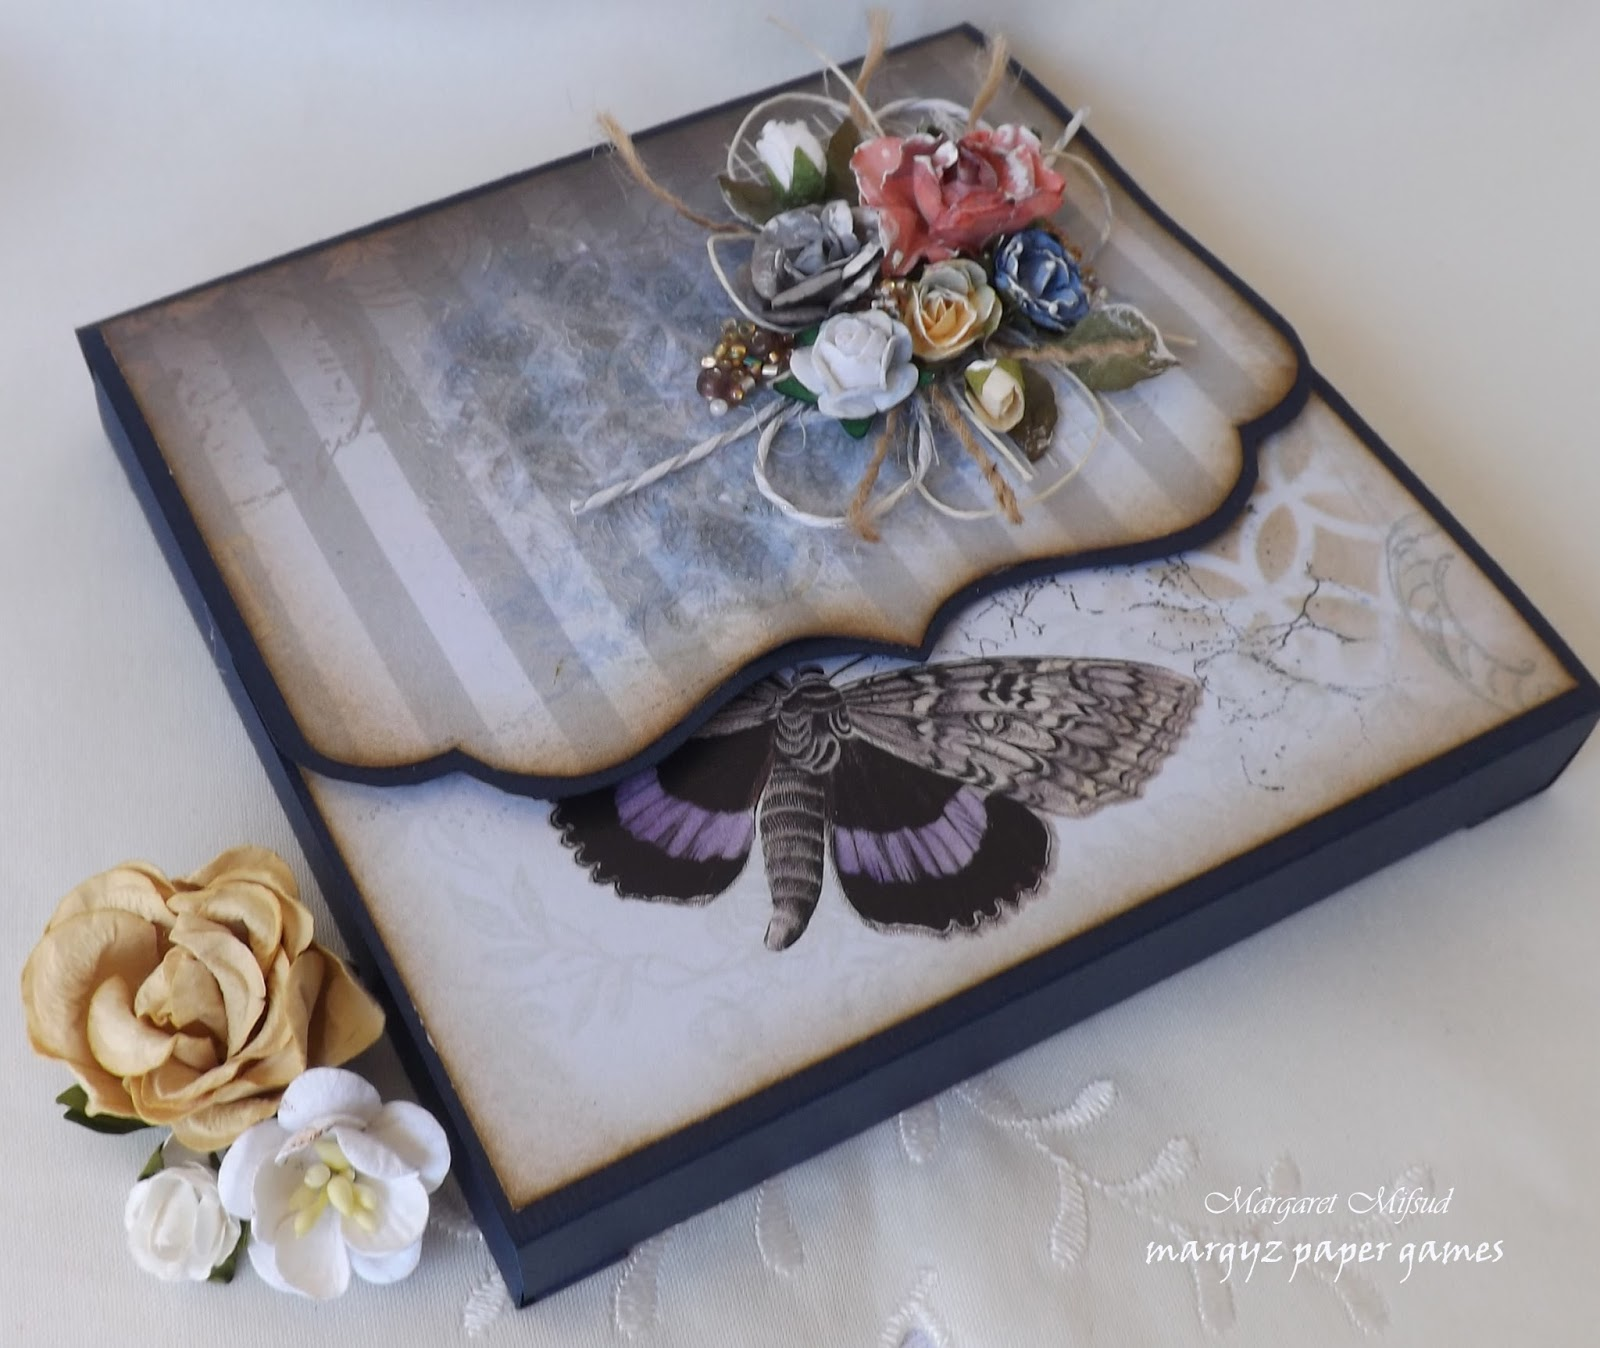 http://margyspapergames.blogspot.com.au/2015/01/the-butterfly-book-kit-for-megs-garden.html